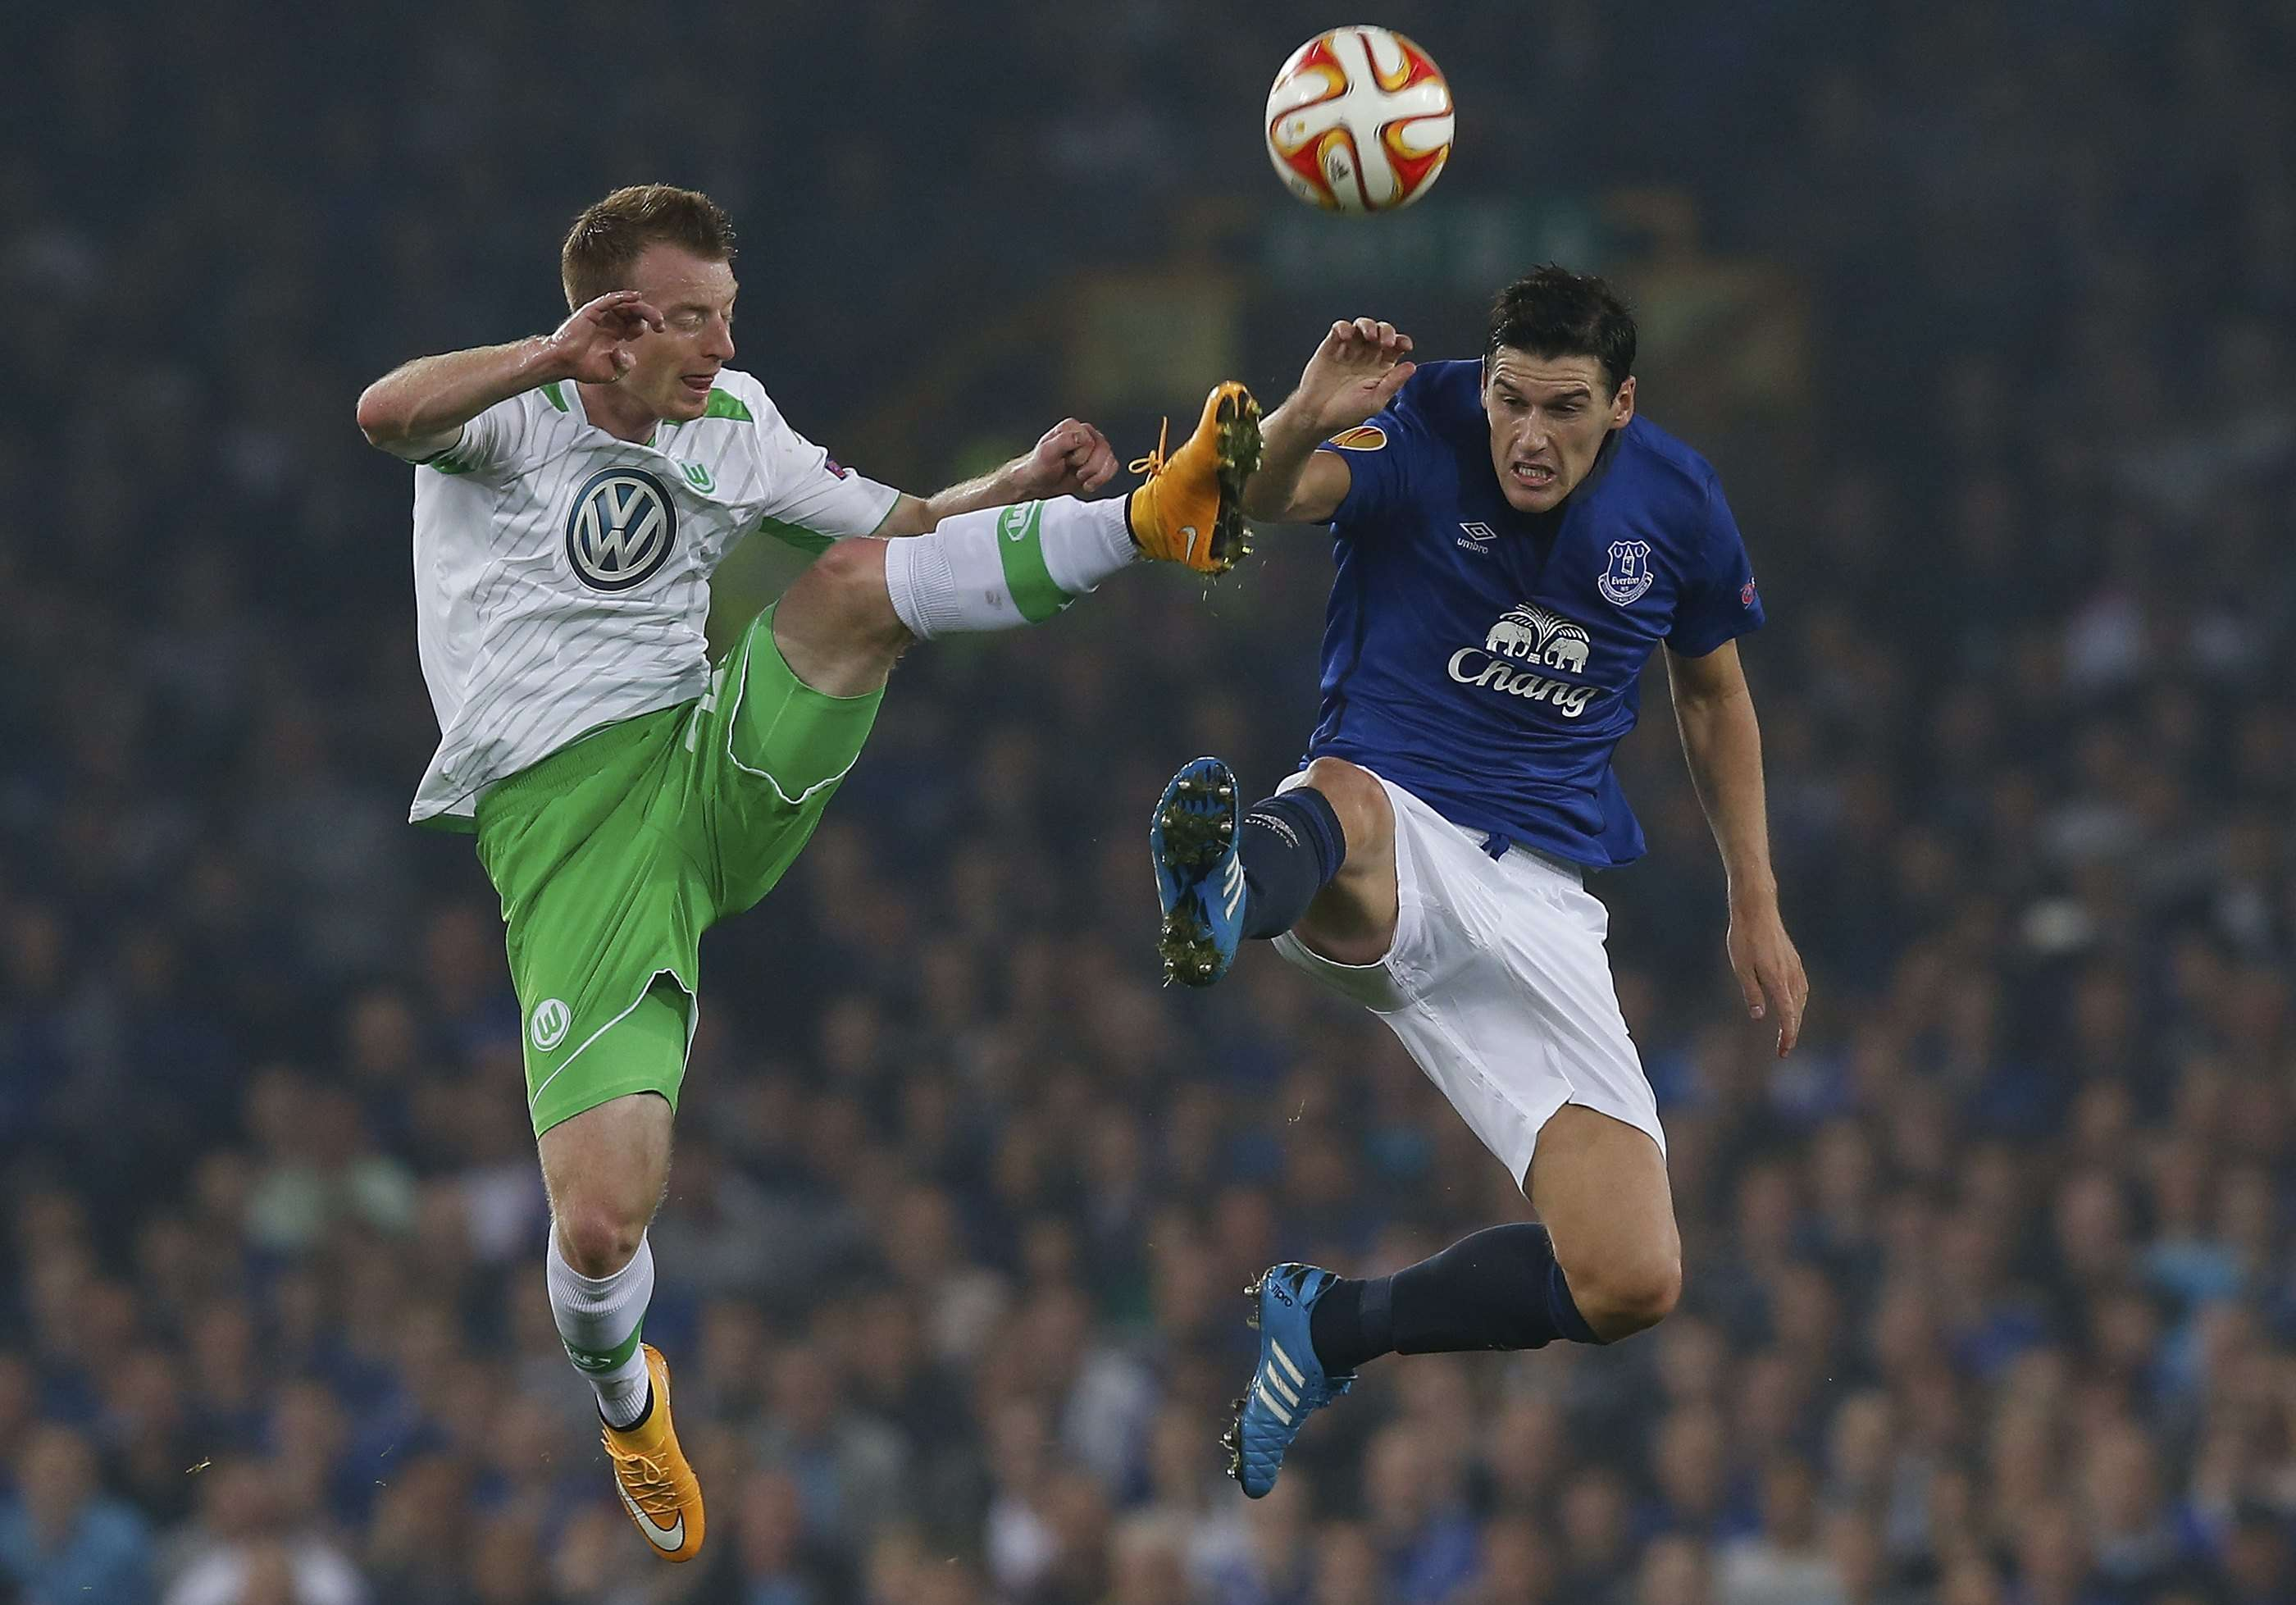 Everton's Gareth Barry (R) challenges VfL Wolfsburg's Maximilian Arnold during their Europa League soccer match at Goodison Park in Liverpool, northern England September 18, 2014. REUTERS/Andrew Yates (BRITAIN - Tags: SPORT SOCCER) Foto: ANDREW YATES/REUTERS